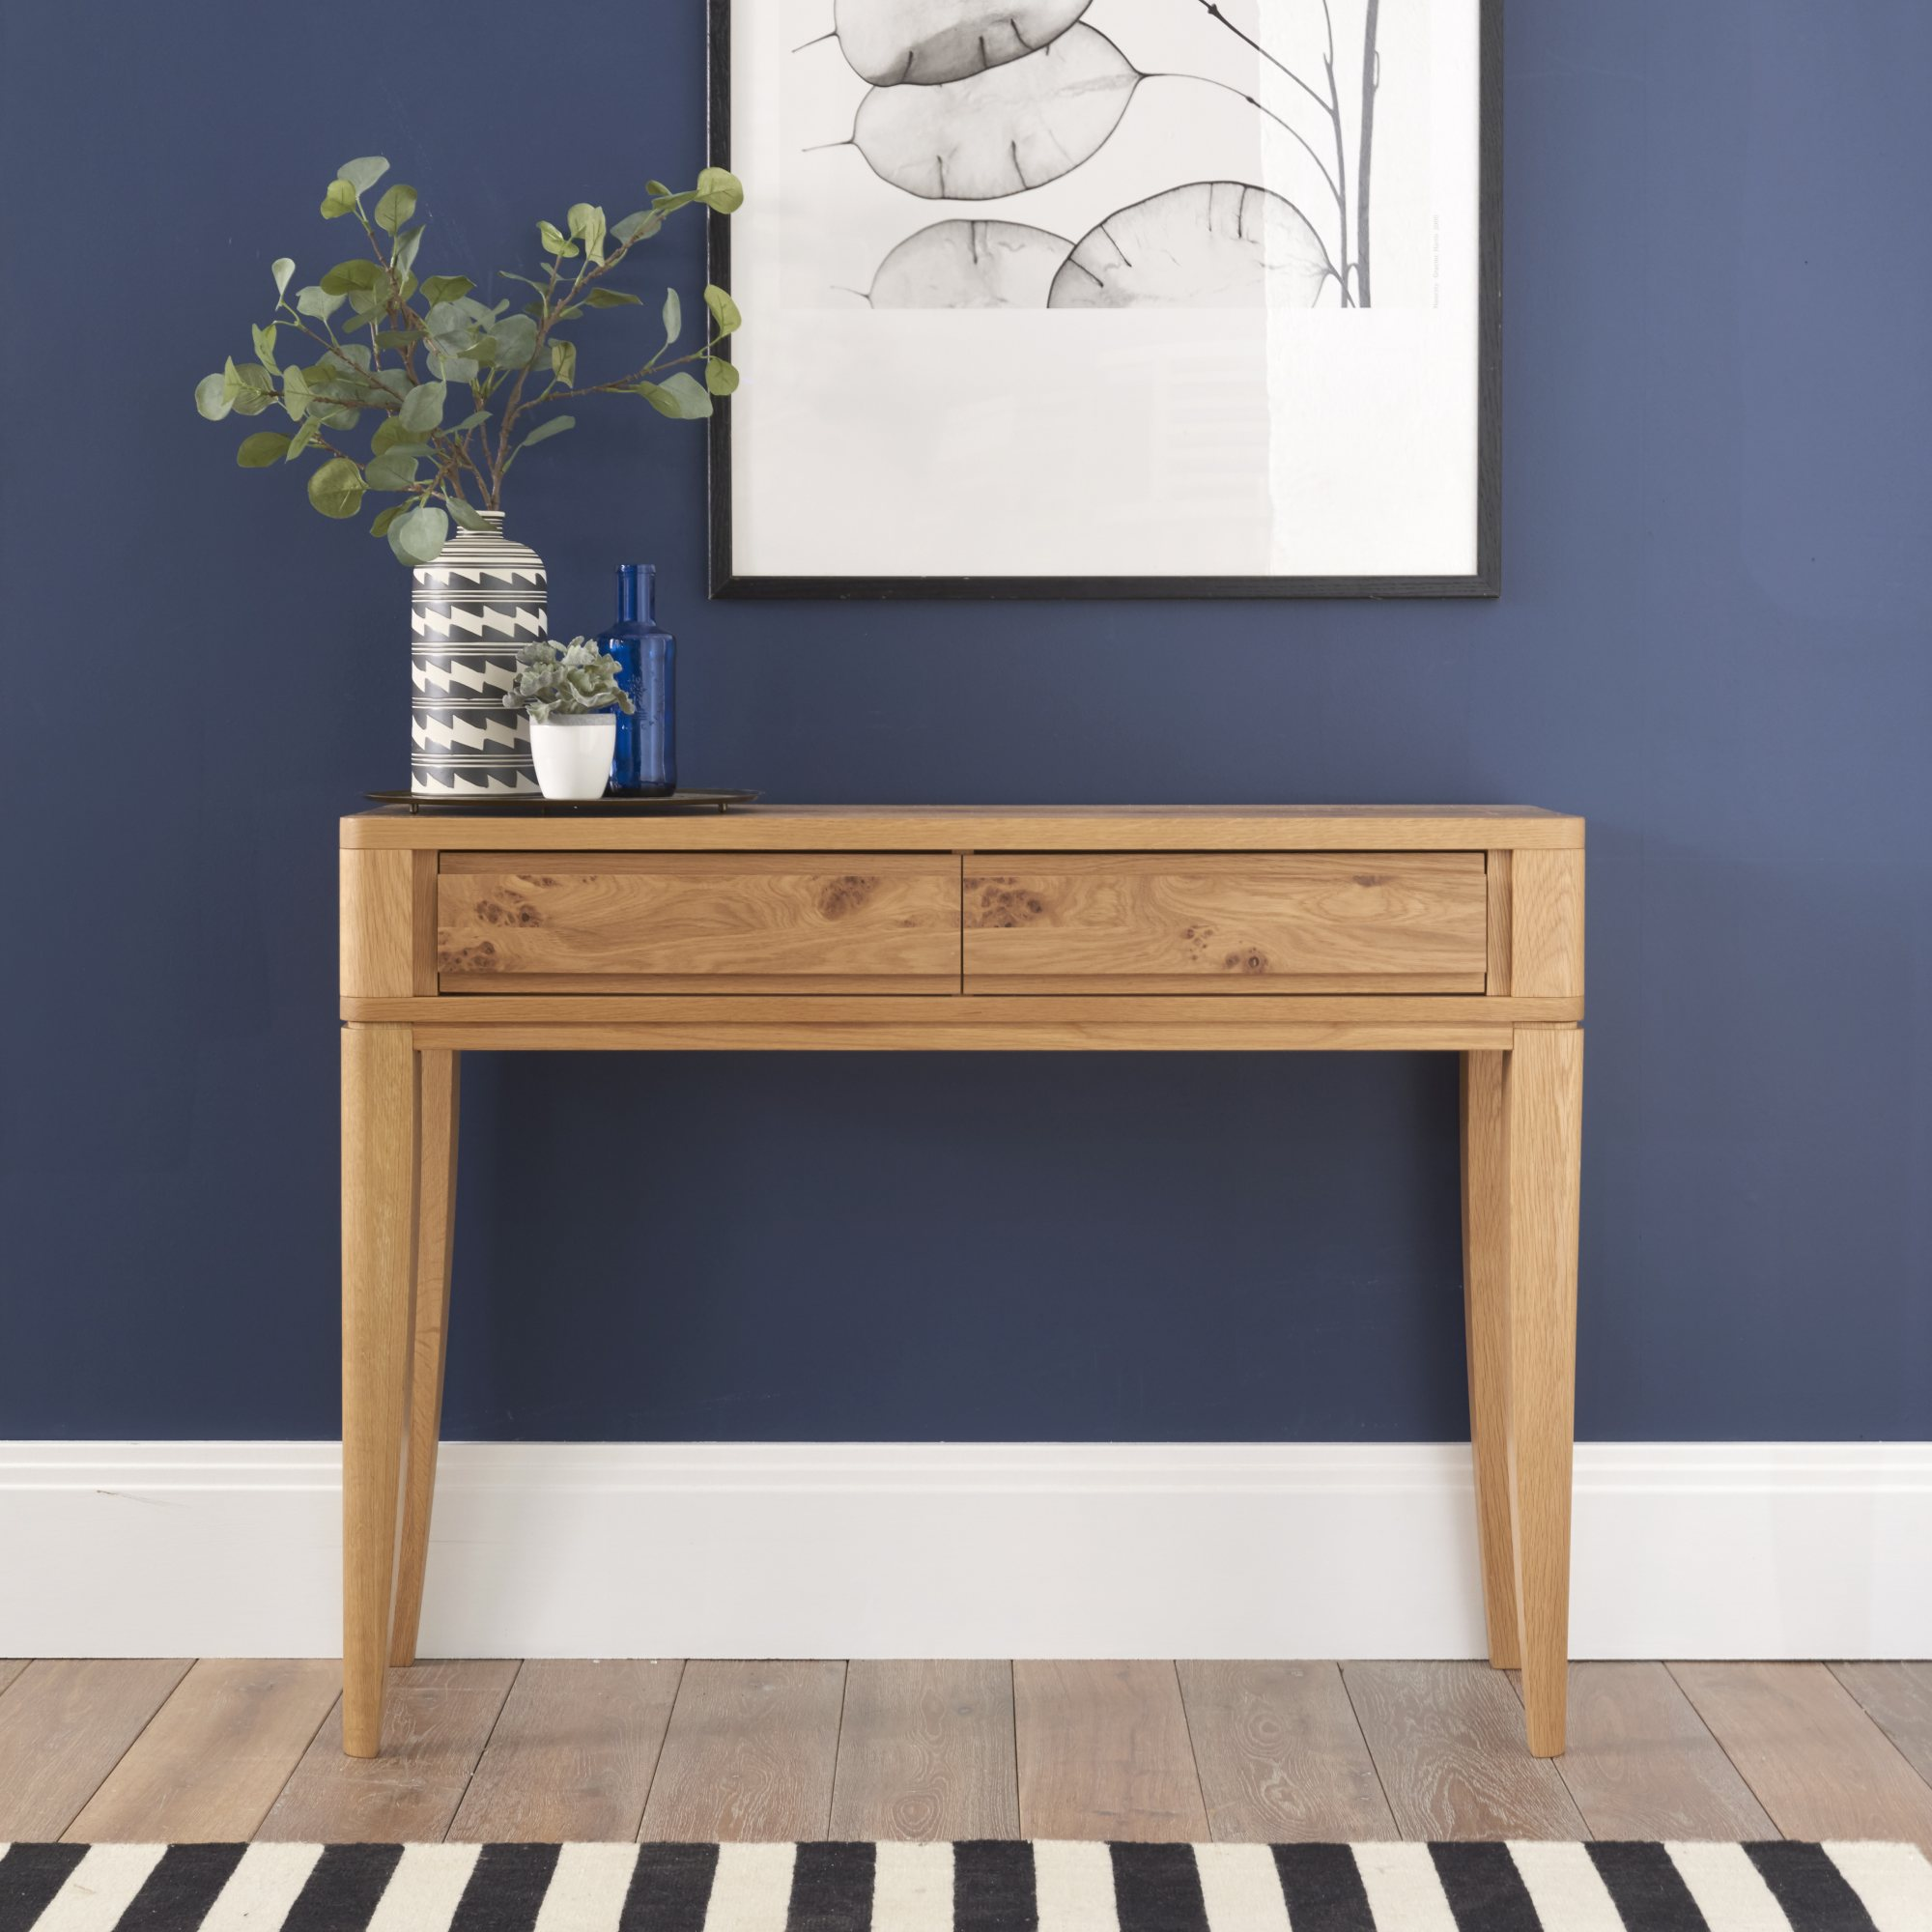 WILLOW PARK CONSOLE TABLE L105cm x D36cm x H79cm